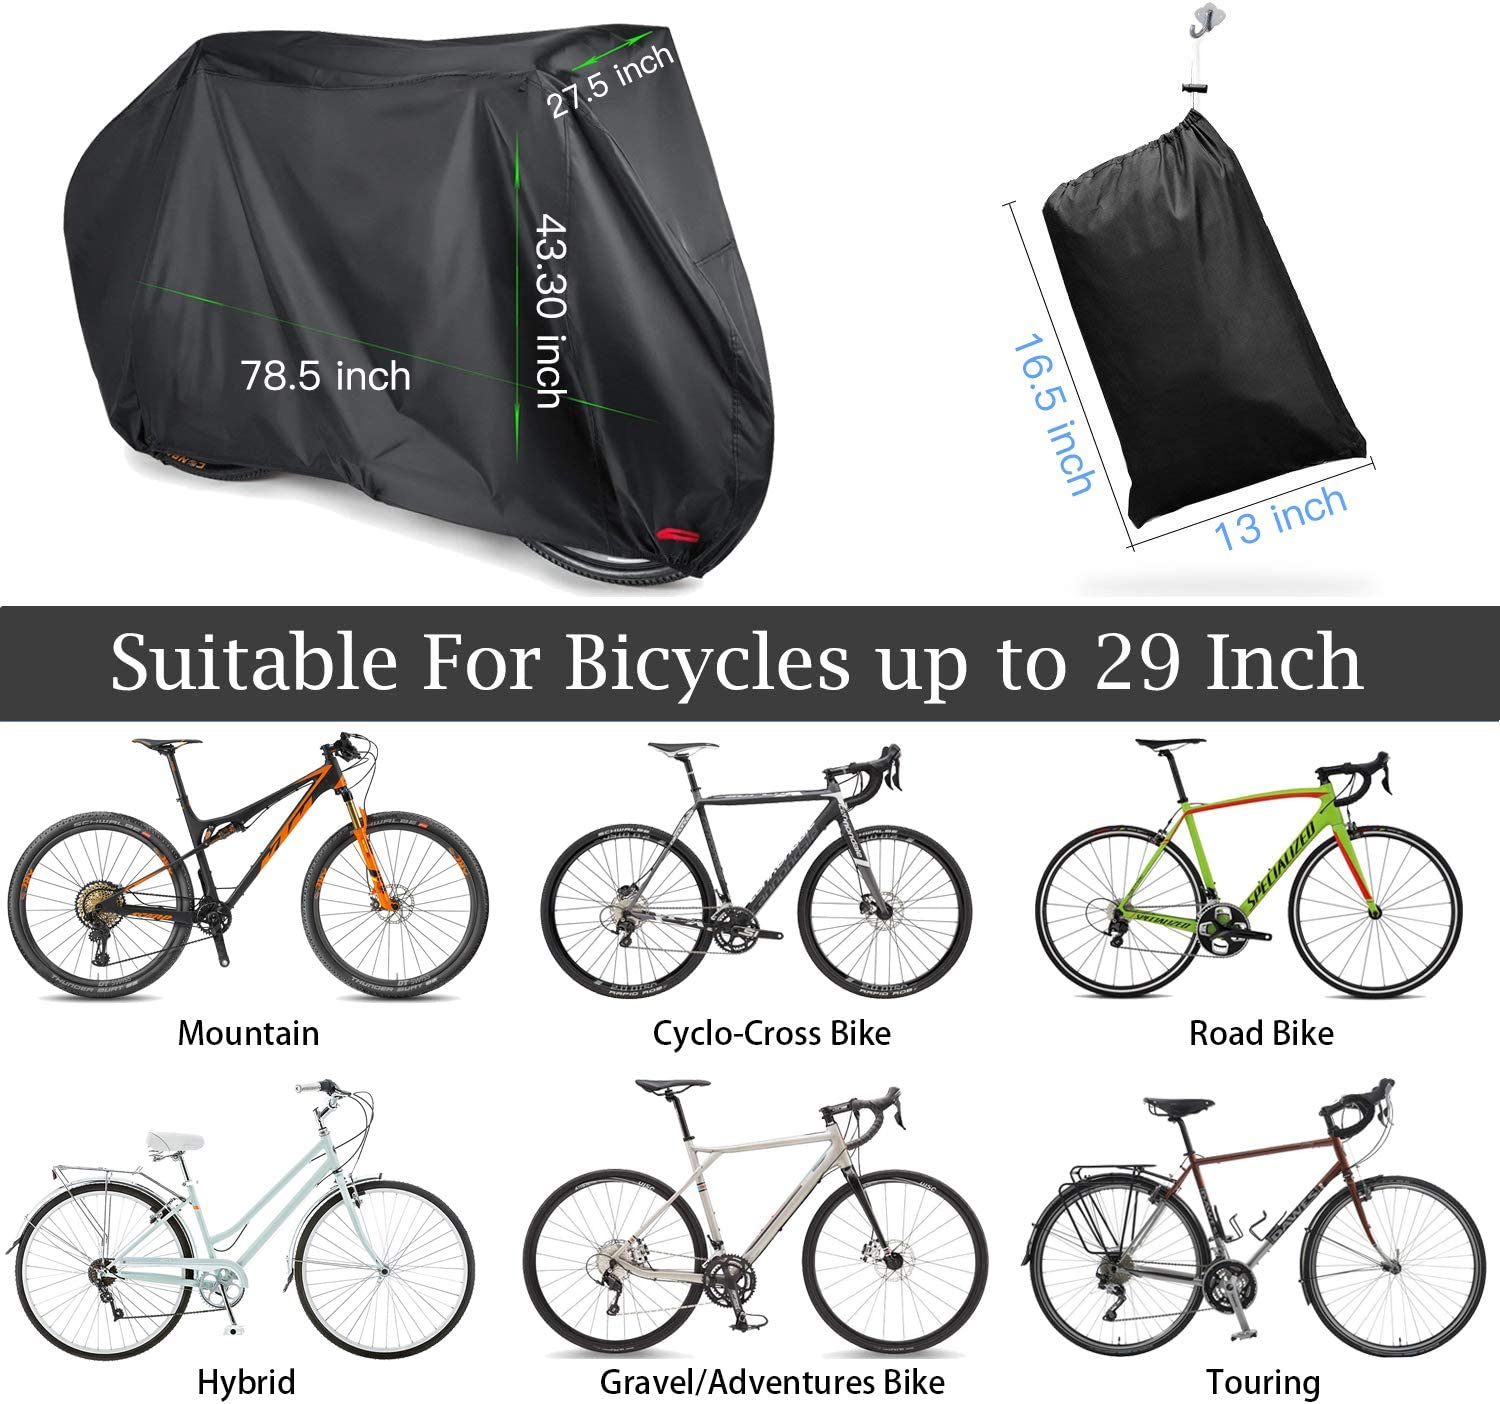 Silver Heavy Duty Water Resistant 190D Oxford Fabric Cover Mountain Road Bikes